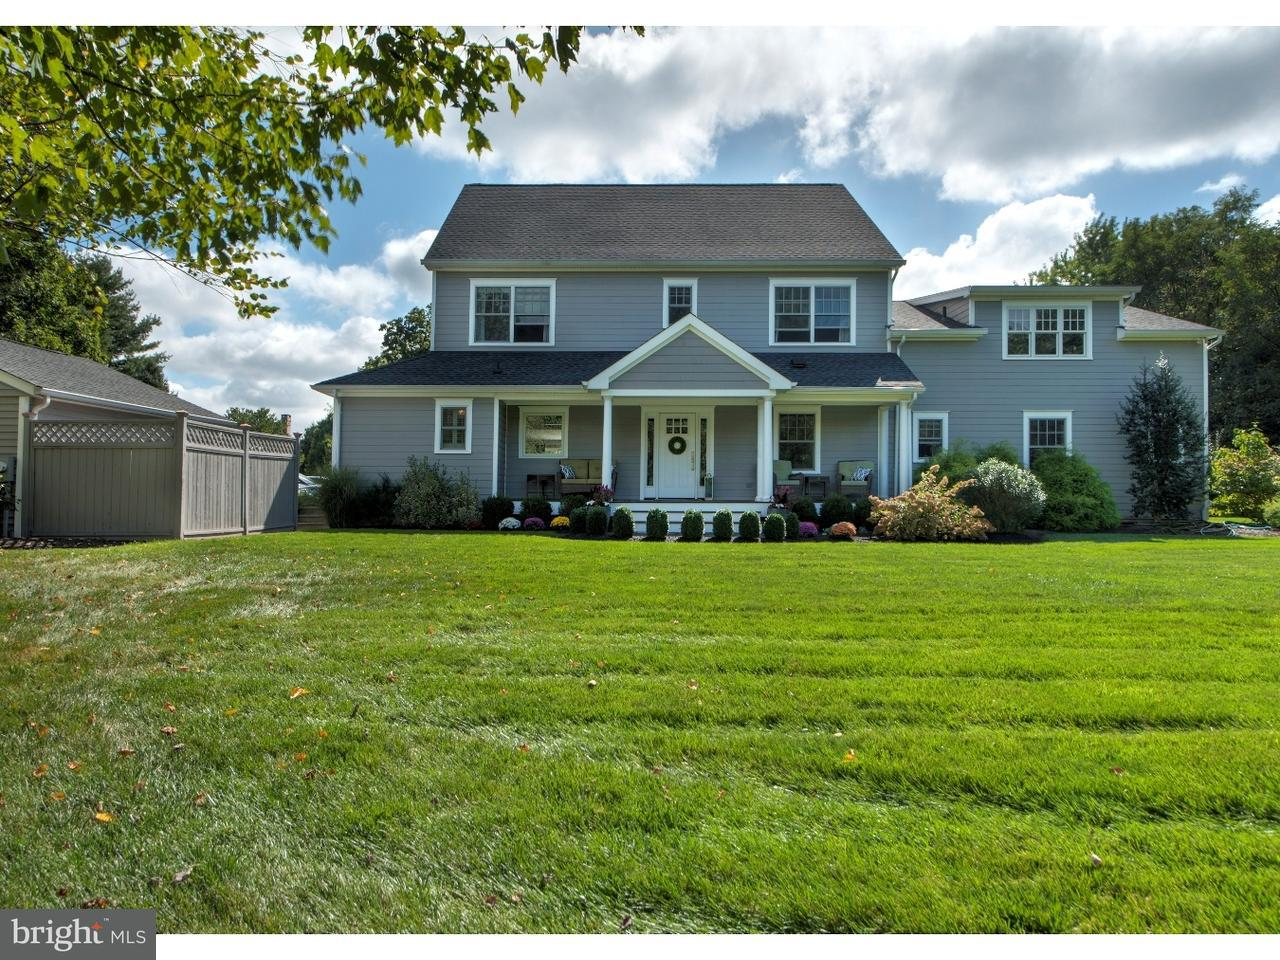 Single Family Home for Sale at 6234 LOWER MOUNTAIN Road Solebury, Pennsylvania 18938 United StatesMunicipality: Solebury Township